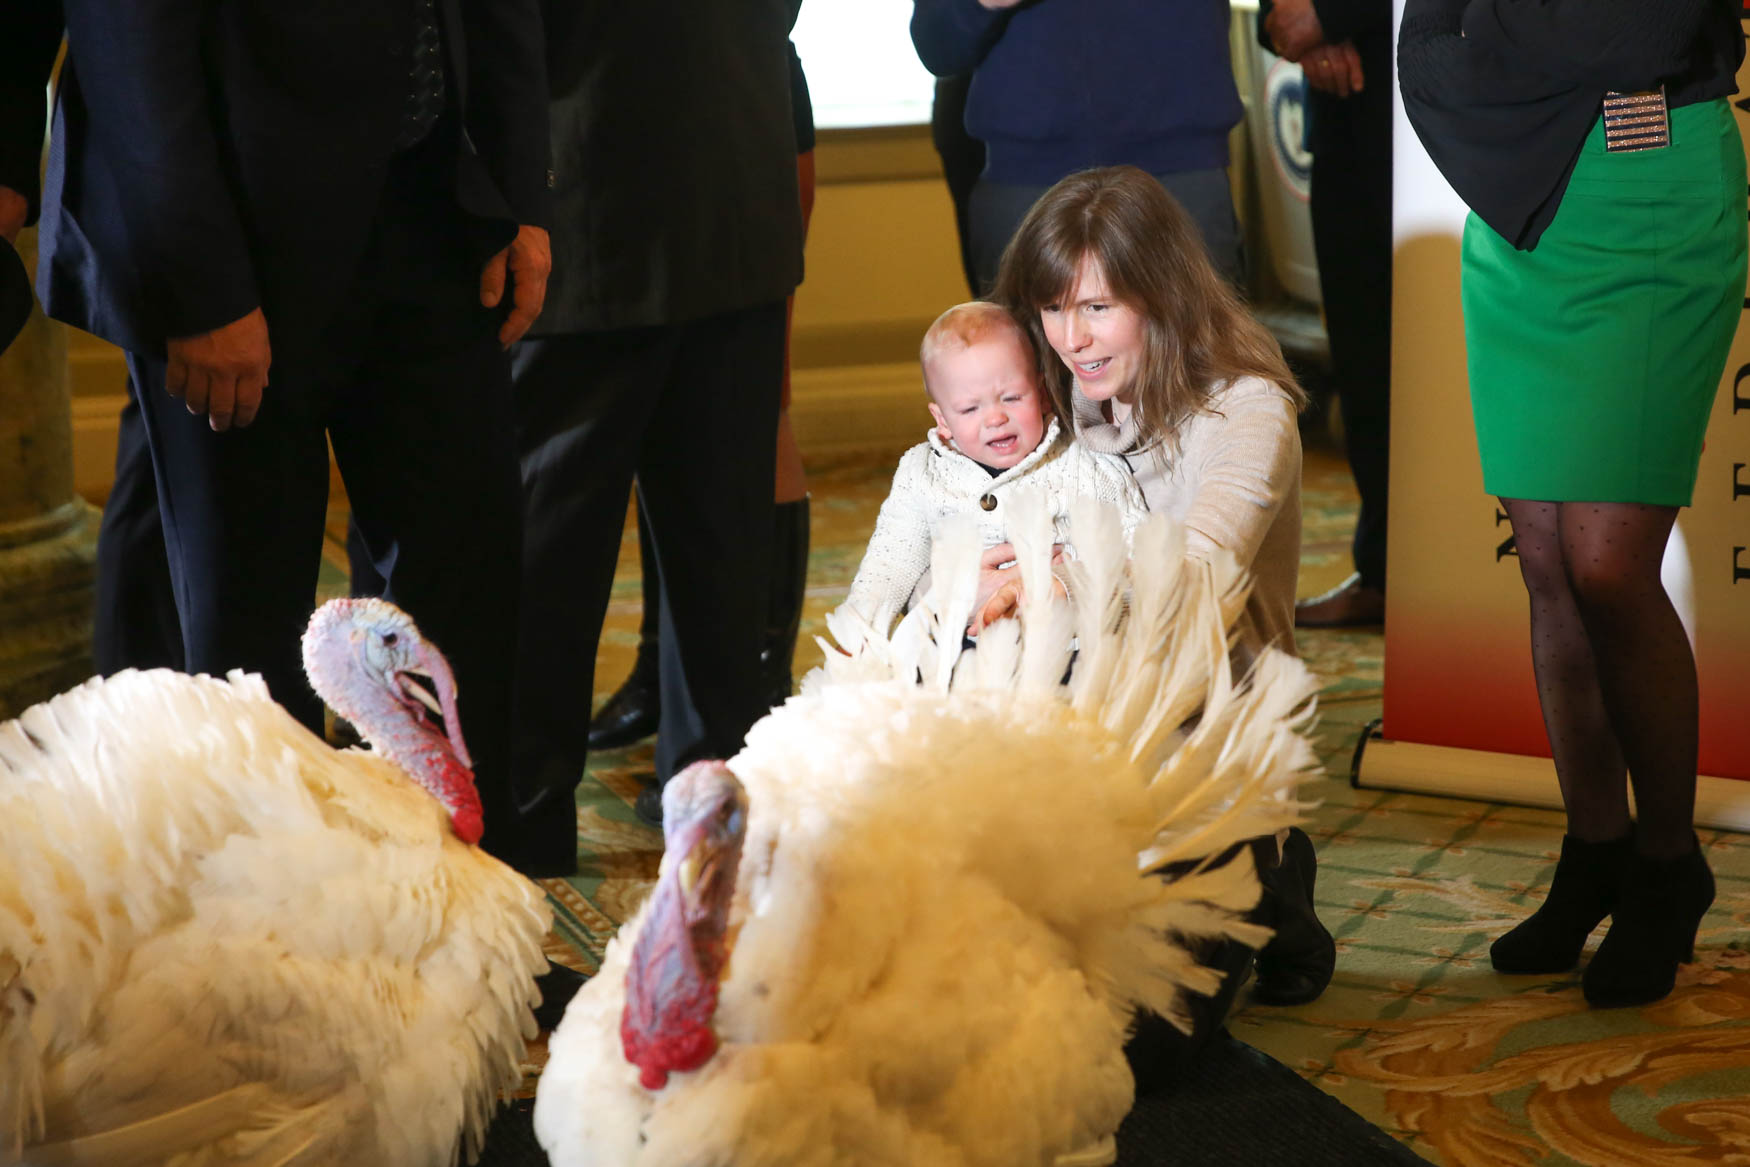 Two turkeys from South Dakota are due to arrive at the White House tomorrow, where one of them will officially be presidentially pardoned from the Thanksgiving table. In the meantime, Peas and Carrots are living it up at the{ }{ }Willard InterContinental hotel in D.C, greeting the press and enjoying the occasional{ }M&M. According to a representative from the hotel, the turkeys were selected for the honor because of their good looks and personality. Although both turkeys will be spared from the dinner table and go on to live the rest of their lives at Virginia Tech, only one will receive{ }the official presidential pardon. (Amanda Andrade-Rhoades/DC Refined){ }